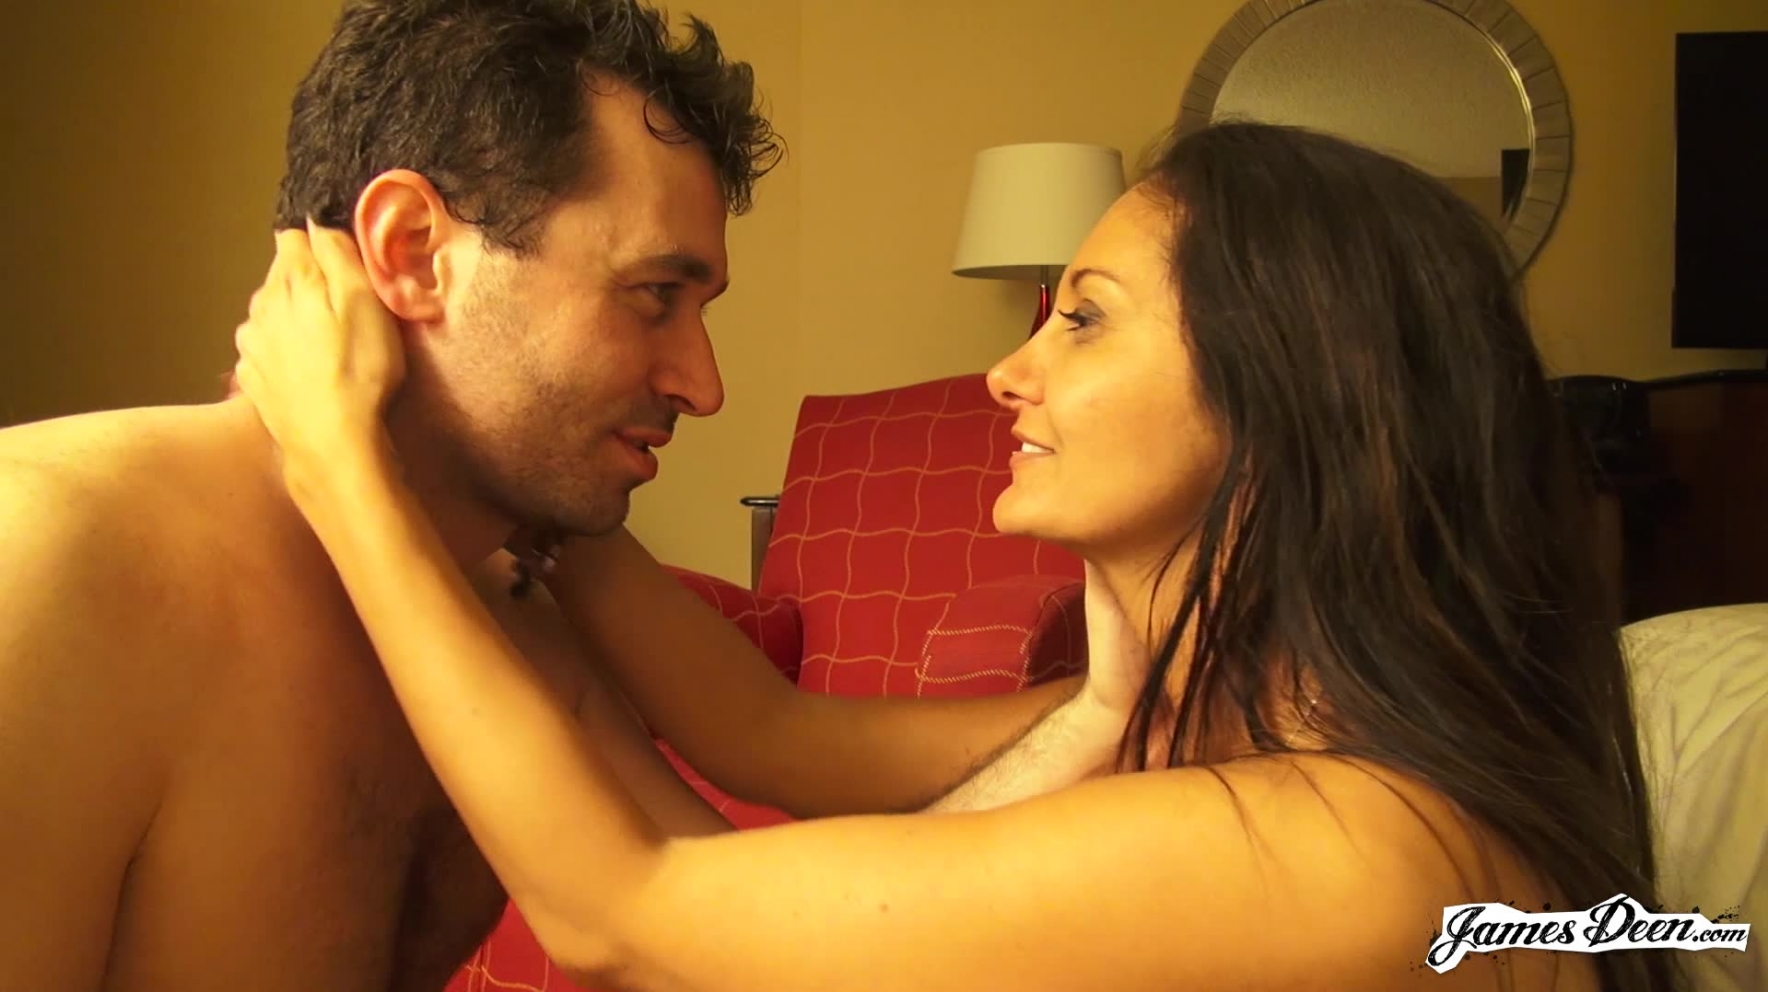 Ava Addams And James Deen Are In